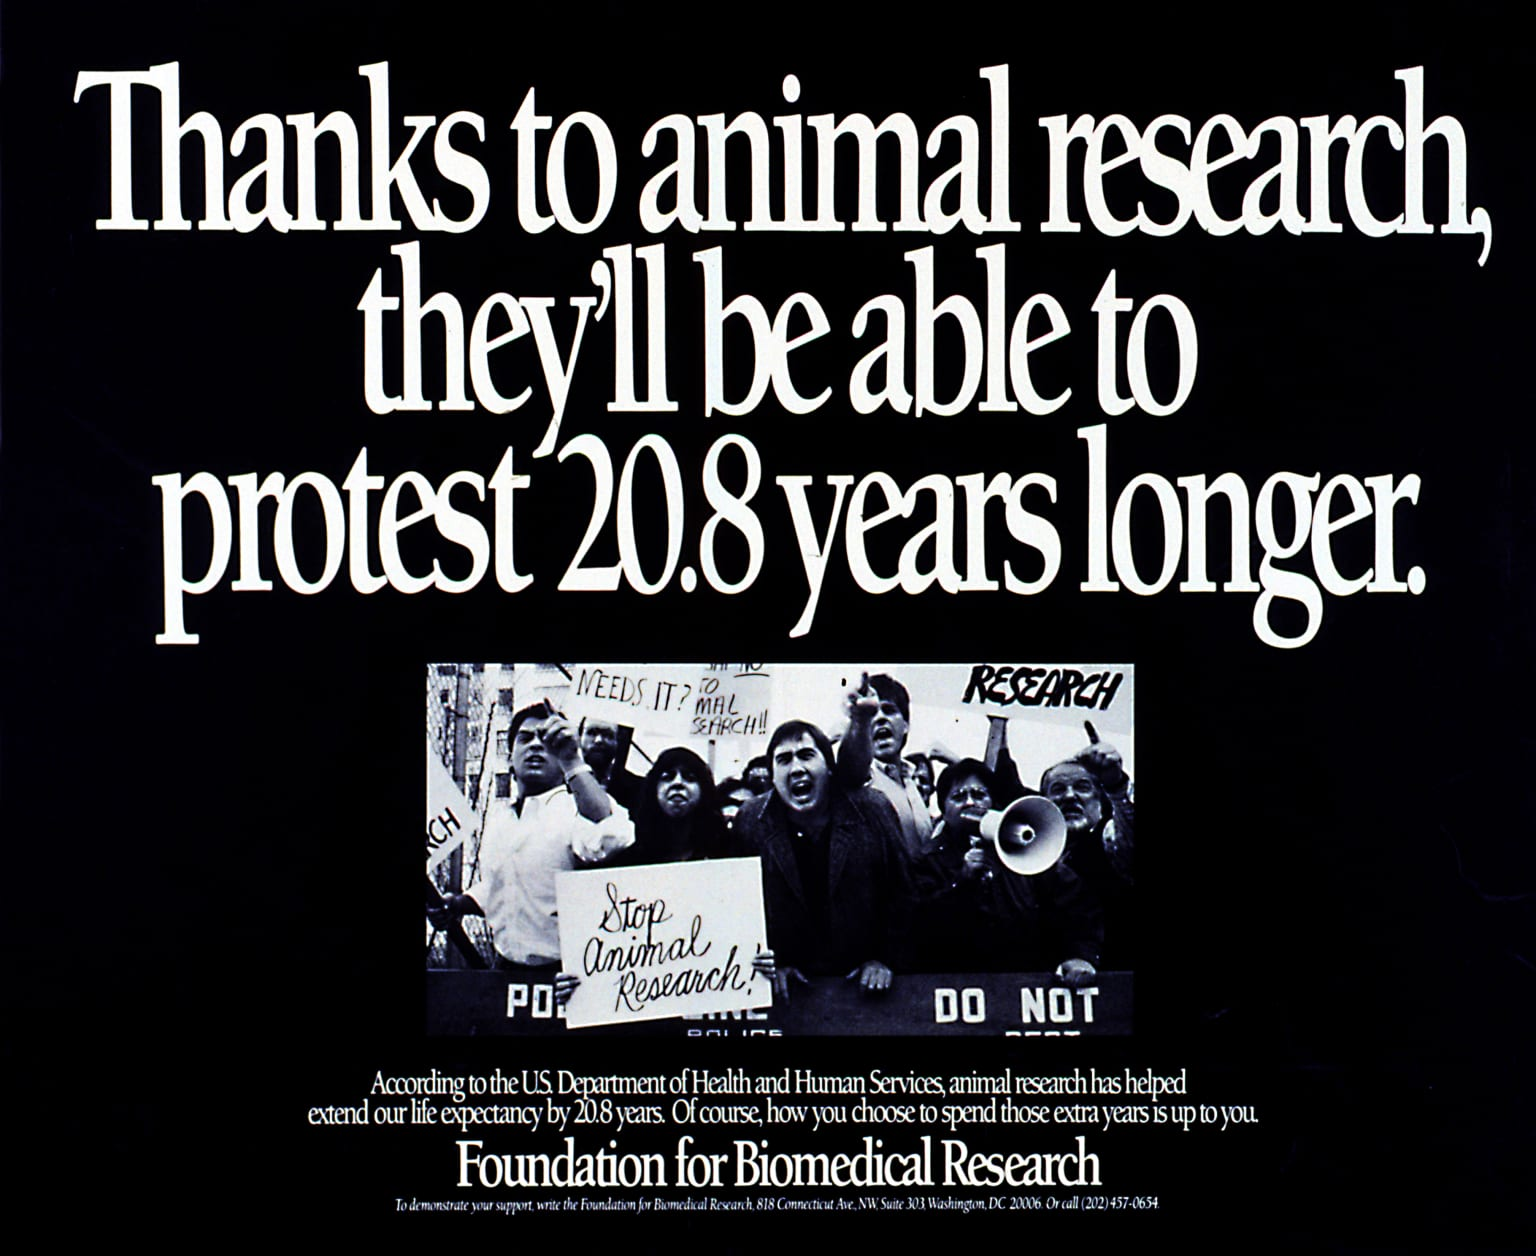 The Other Side of Animal Research